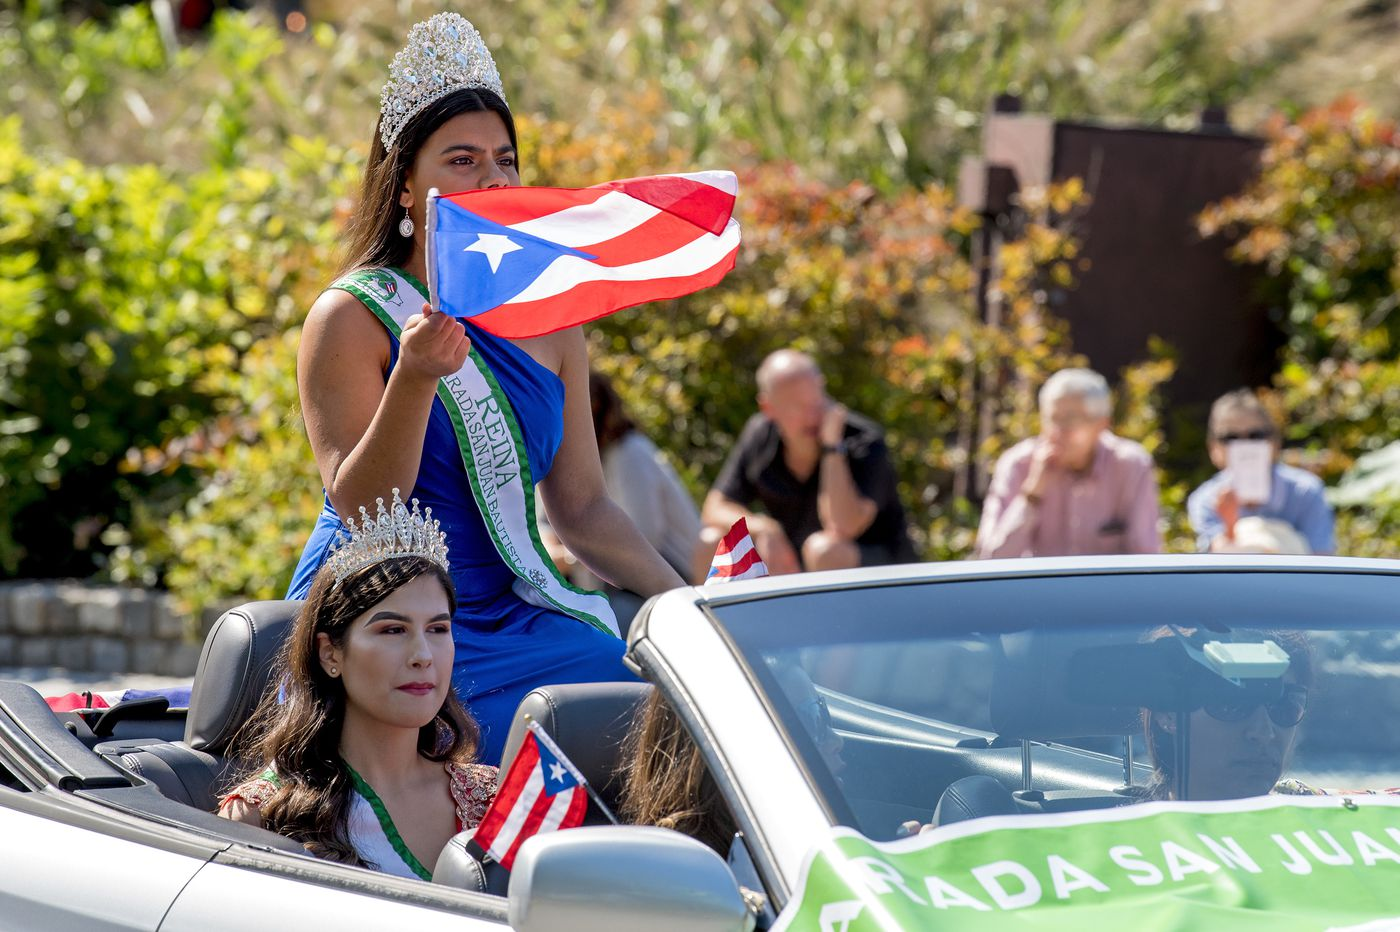 The Philadelphia Puerto Rican Day Parade in pictures: Celebrating pride and rebirth